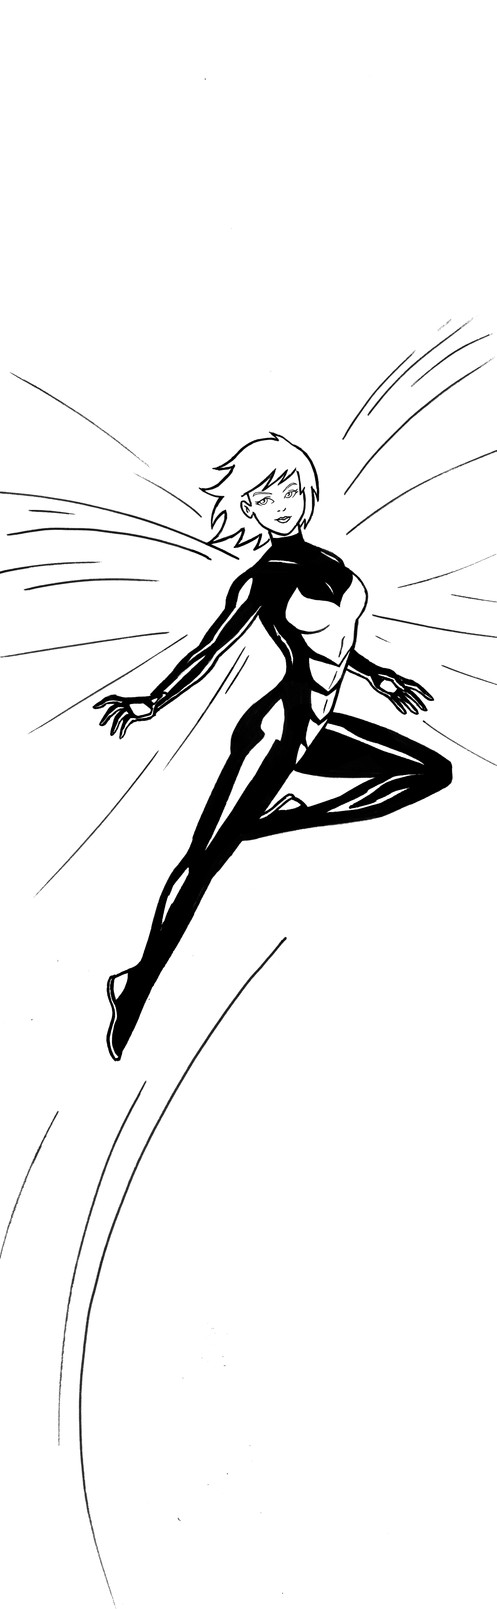 Wasp Art Inks by RichBernatovech